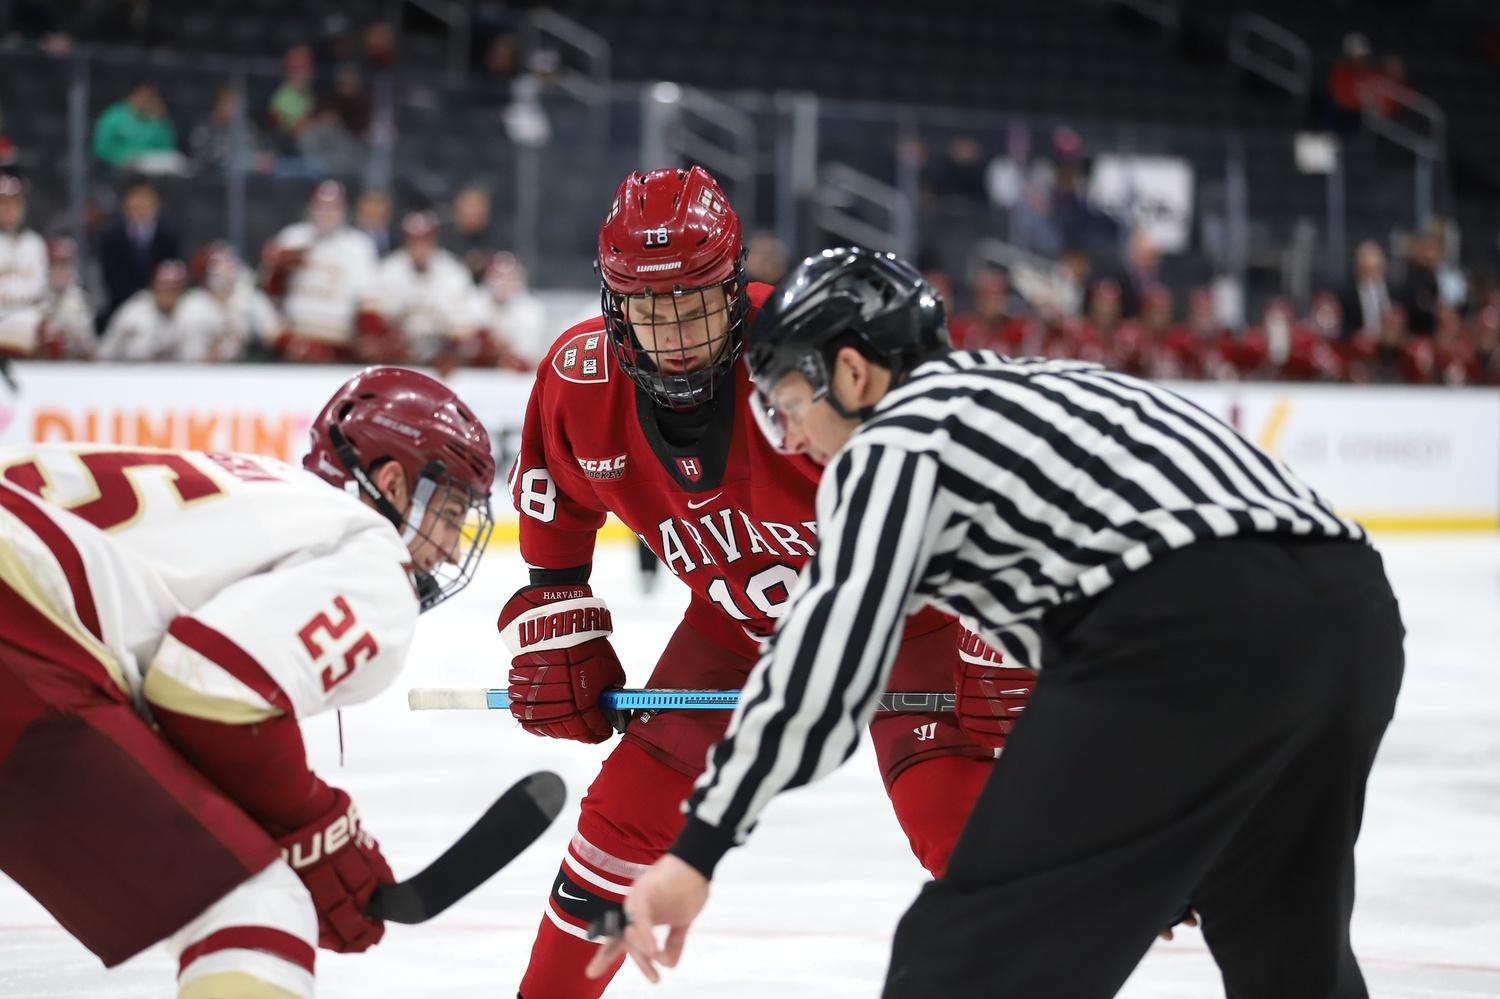 While the consolation game is not ideal for either squad, the crosstown rivals who battled on Monday night had plenty to play for, including the Pairwise rankings.